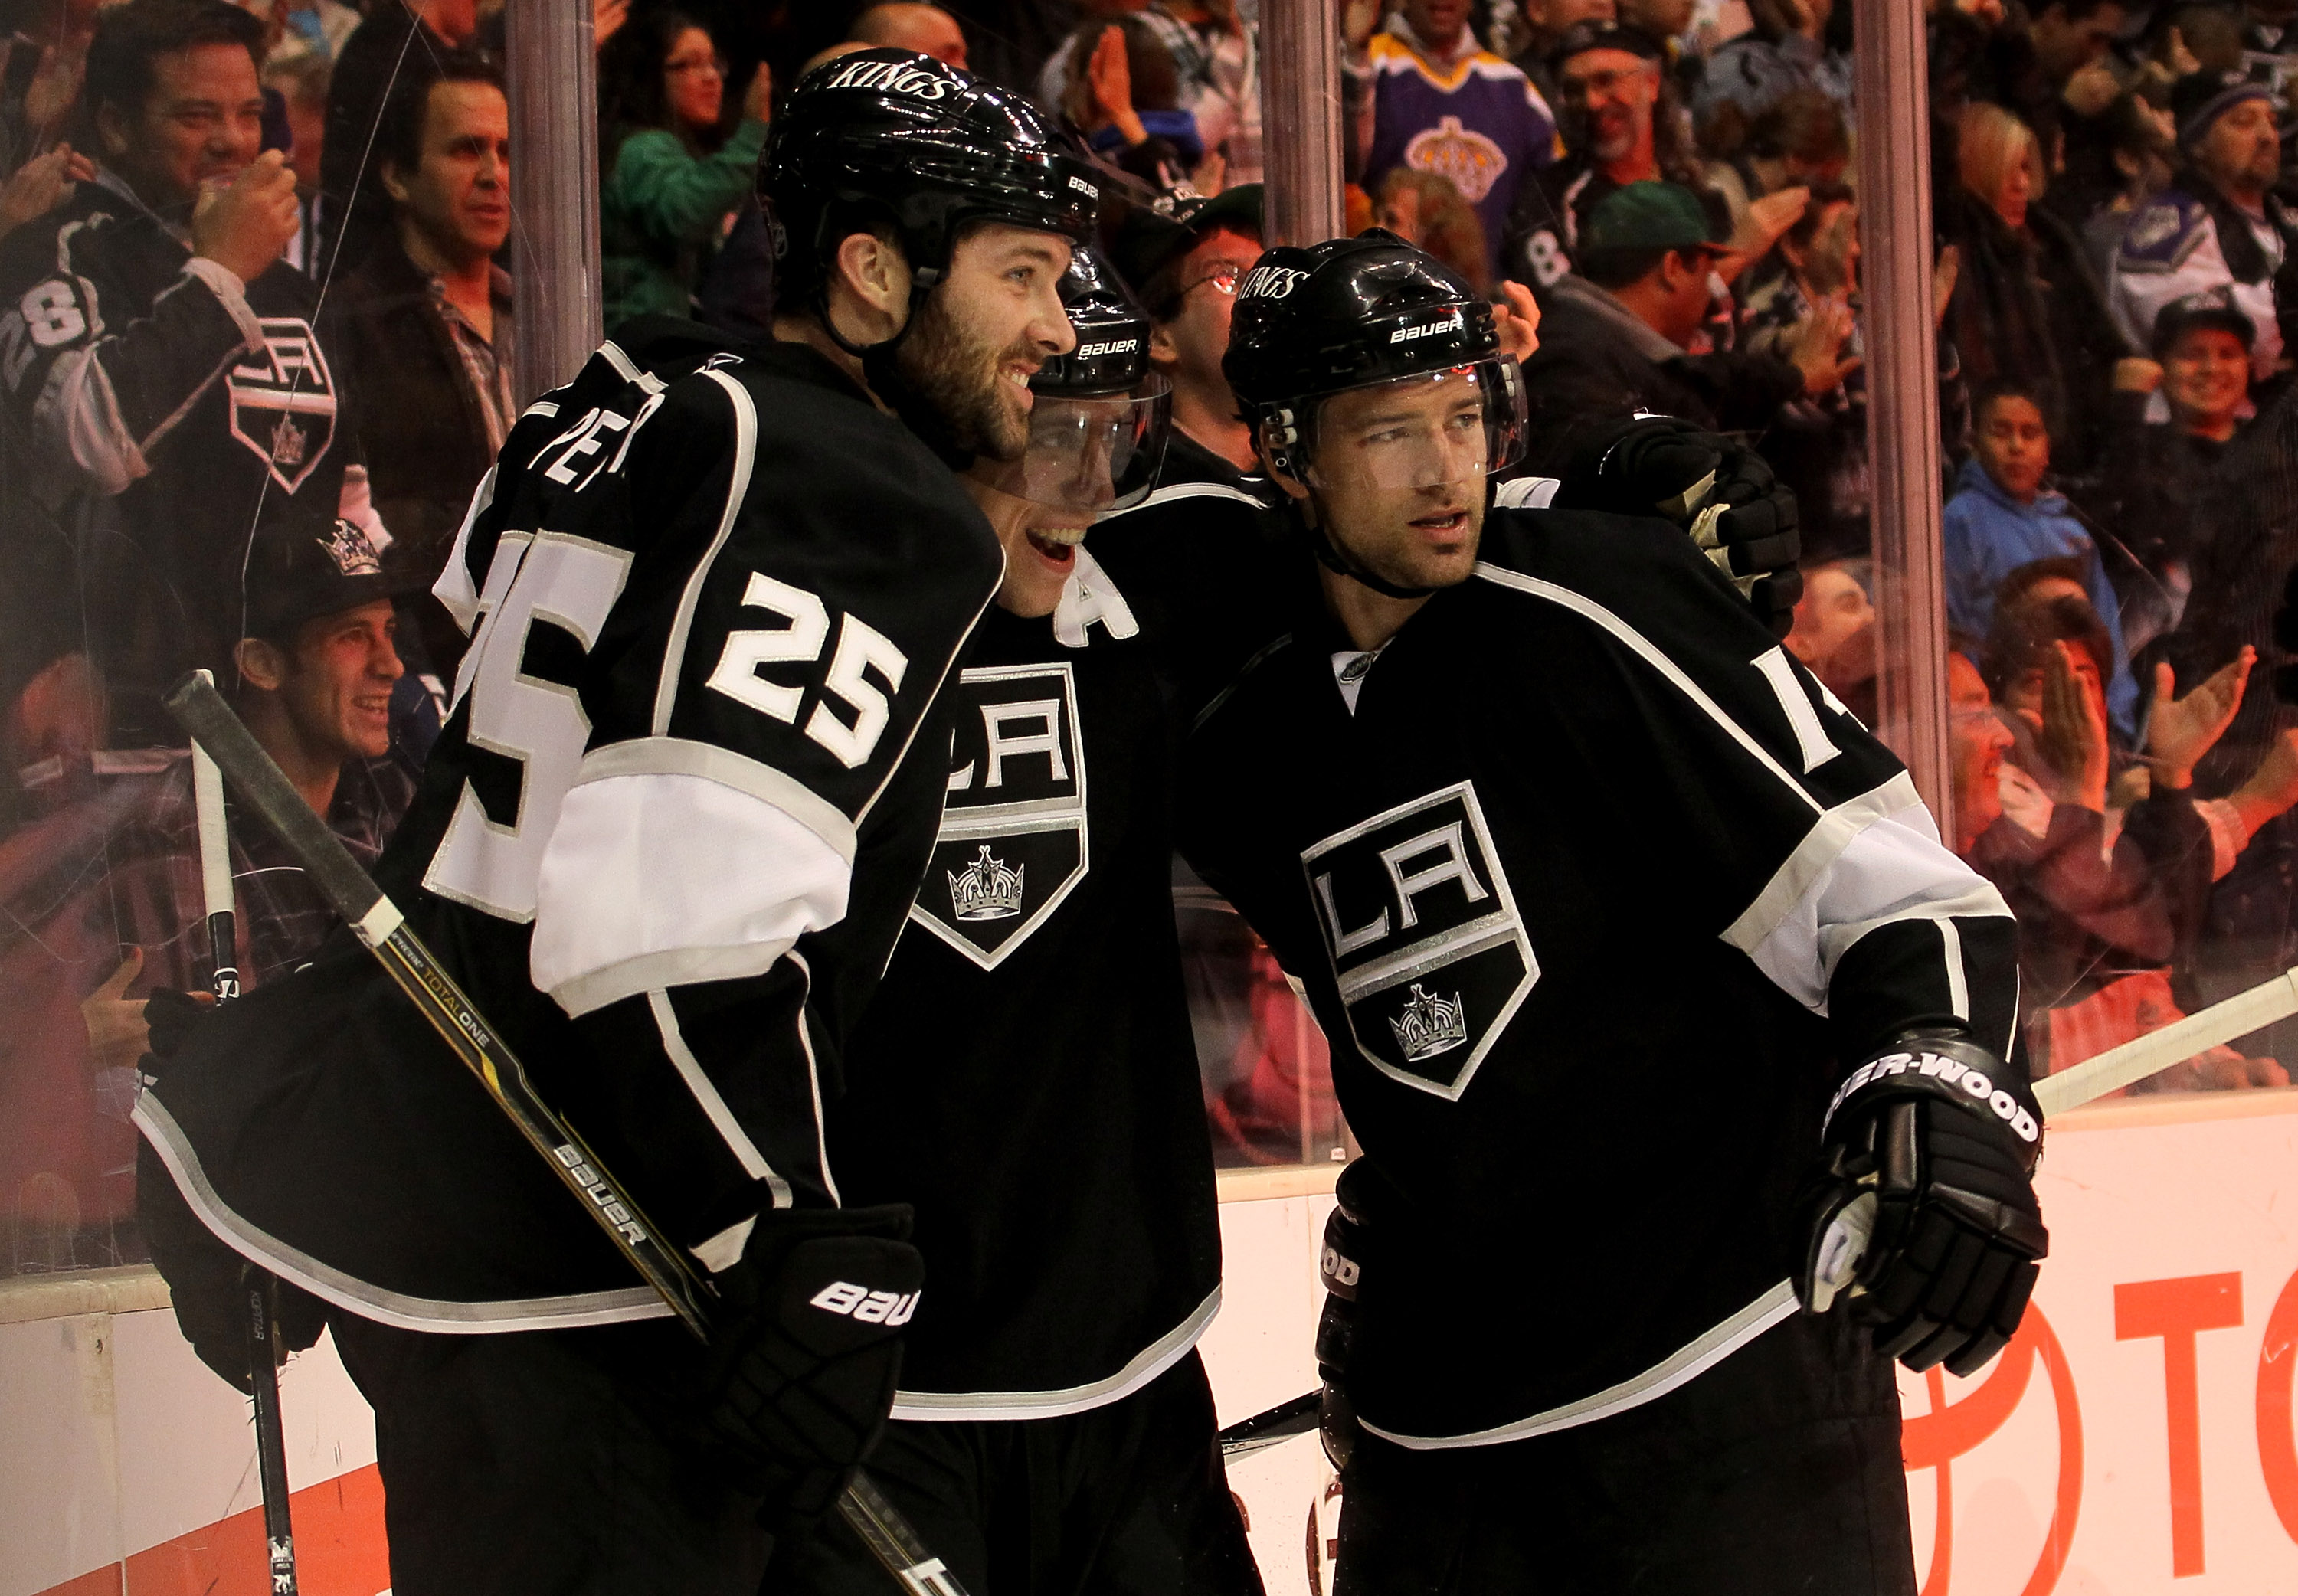 LOS ANGELES, CA - MARCH 7:  Justin Williams #14 (R) of the Los Angeles Kings celebrates with Anze Kopitar #11 (C) and Dustin Penner #25 after his second period goal against the Dallas Stars at Staples Center on March 7, 2011 in Los Angeles, California.